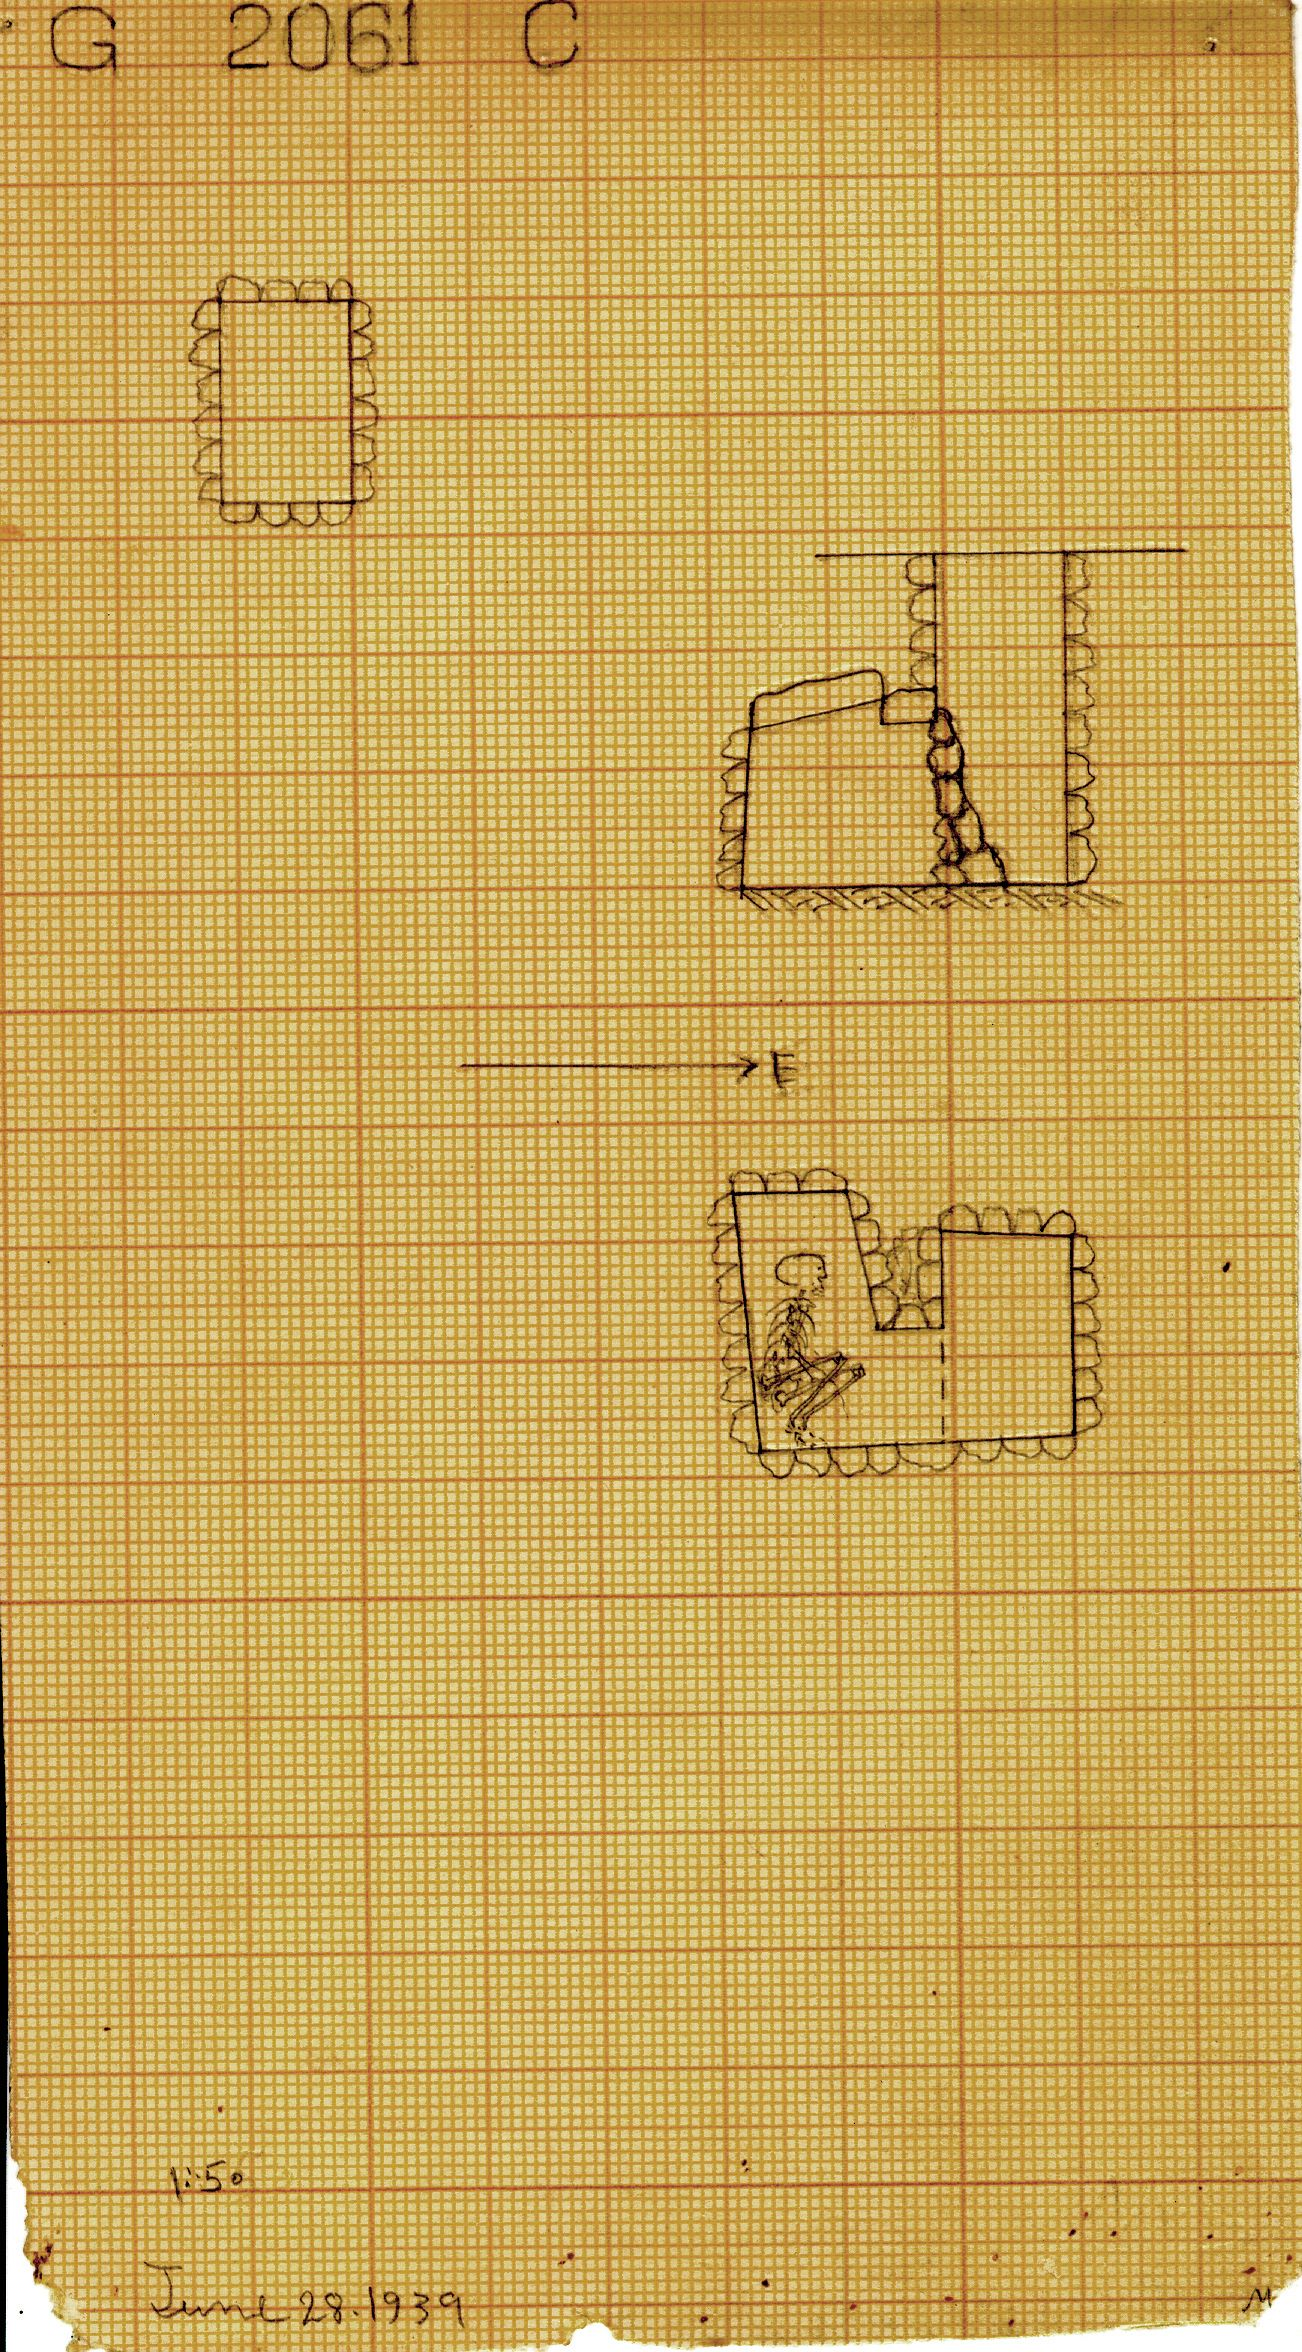 Maps and plans: G 2061, Shaft C